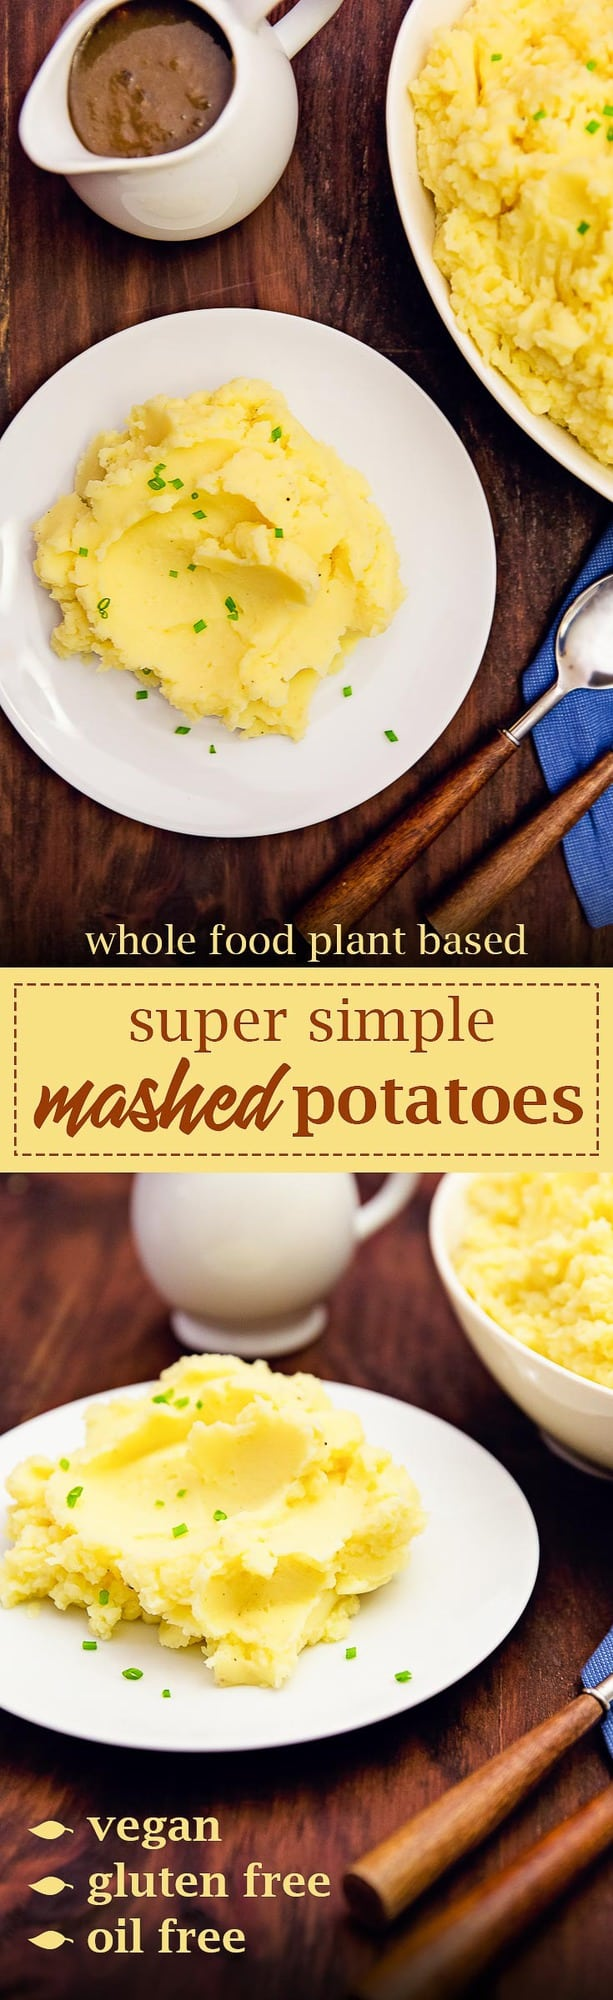 mashed potatoes, potatoes, super simple mashed potatoes, dinner, lunch, side, gluten free, vegan, vegetarian, whole food plant based, wfpb, recipe, oil free, refined sugar free, easy recipe, vegan recipe, gluten free recipe, vegetarian recipe, almond milk, vegan mashed potatoes, vegetarian mashed potatoes, whole food plant based mashed potatoes, wfpb mashed potatoes, vegan potatoes, vegetarian potatoes, whole food plant based potatoes, wfpb potatoes, quick side, side dish, gluten free side dish,